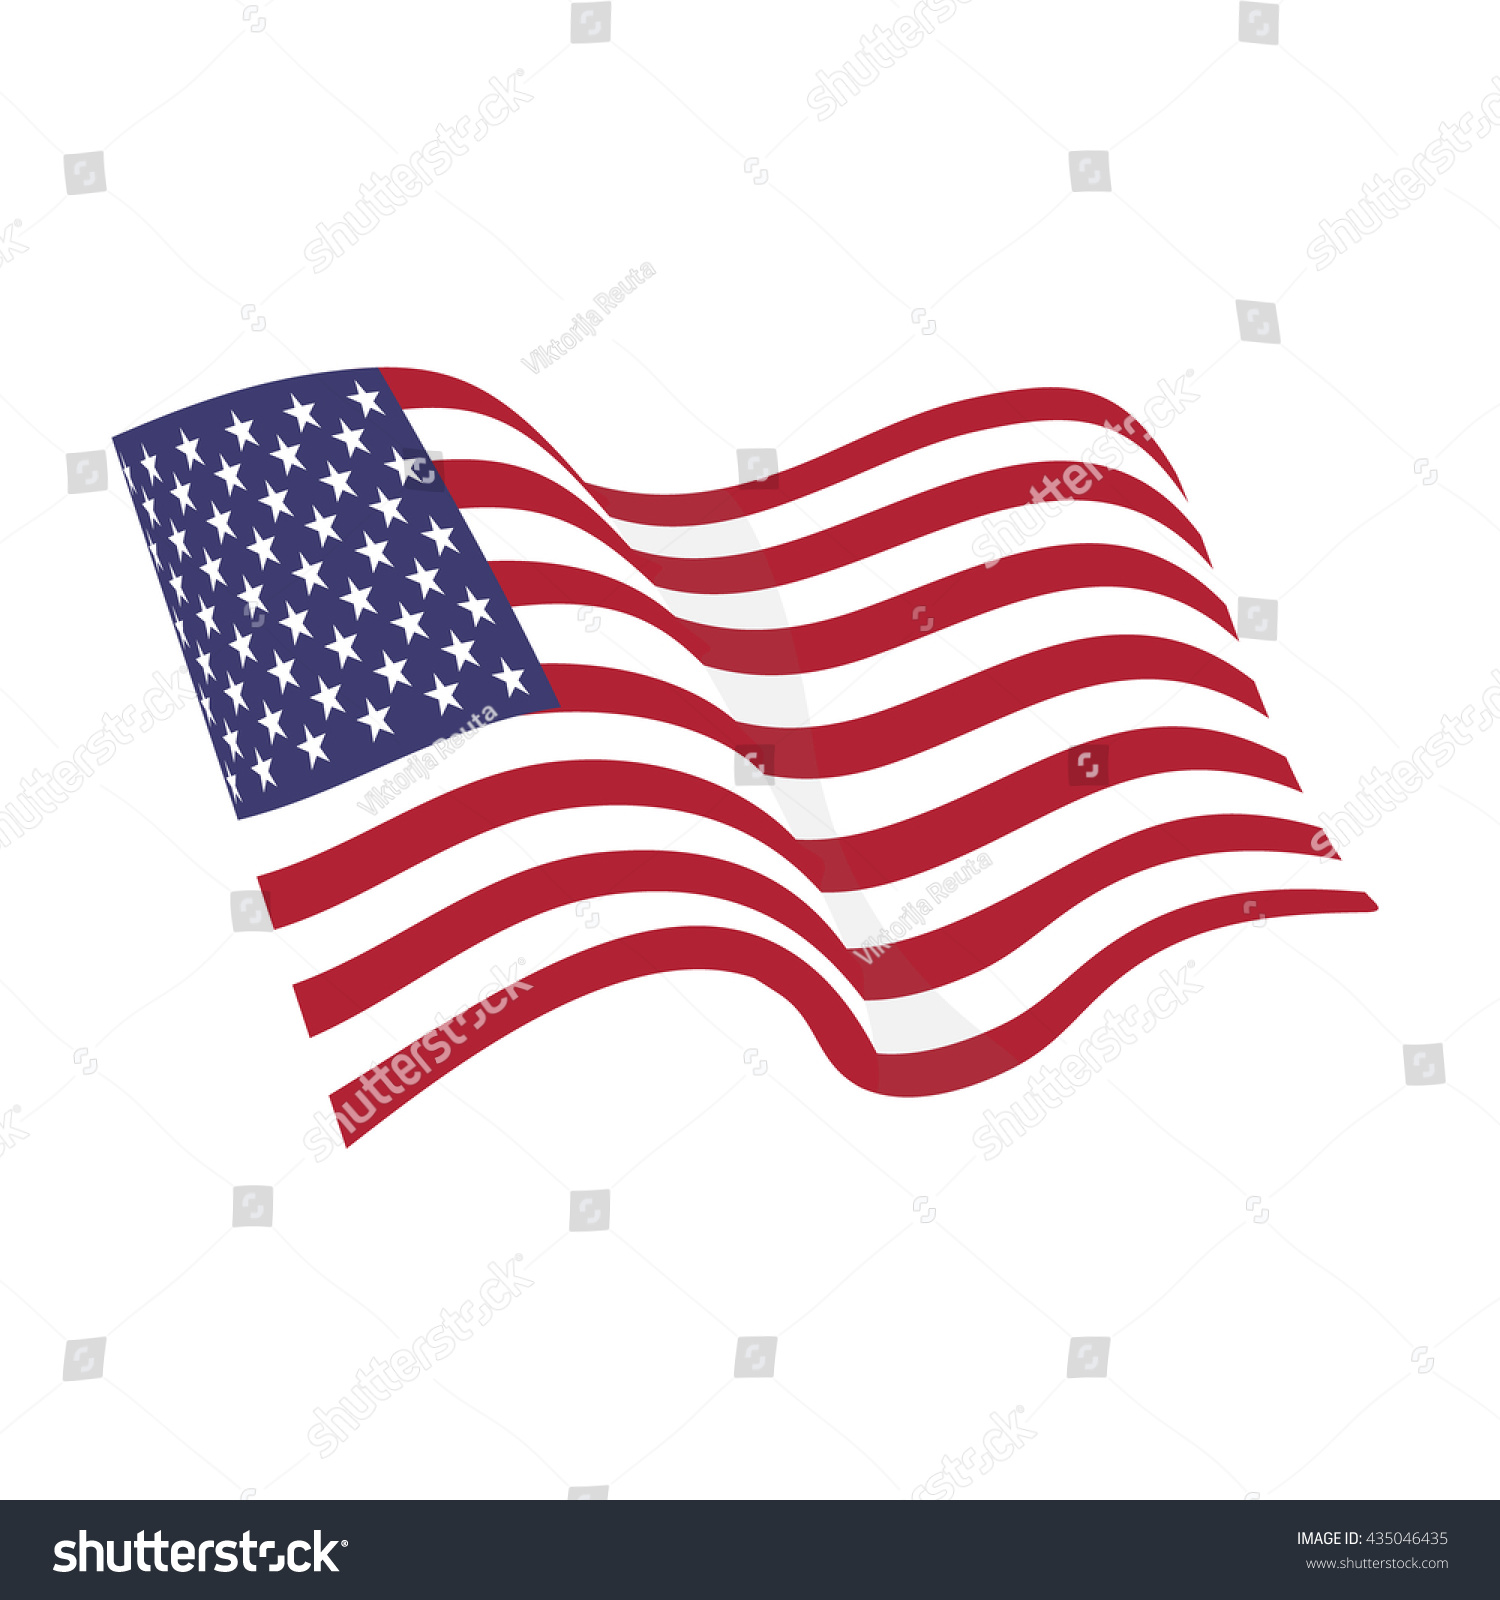 American waving flag vector icon national stock vector 435046435 american waving flag vector icon national symbol red white and blue with stars biocorpaavc Choice Image